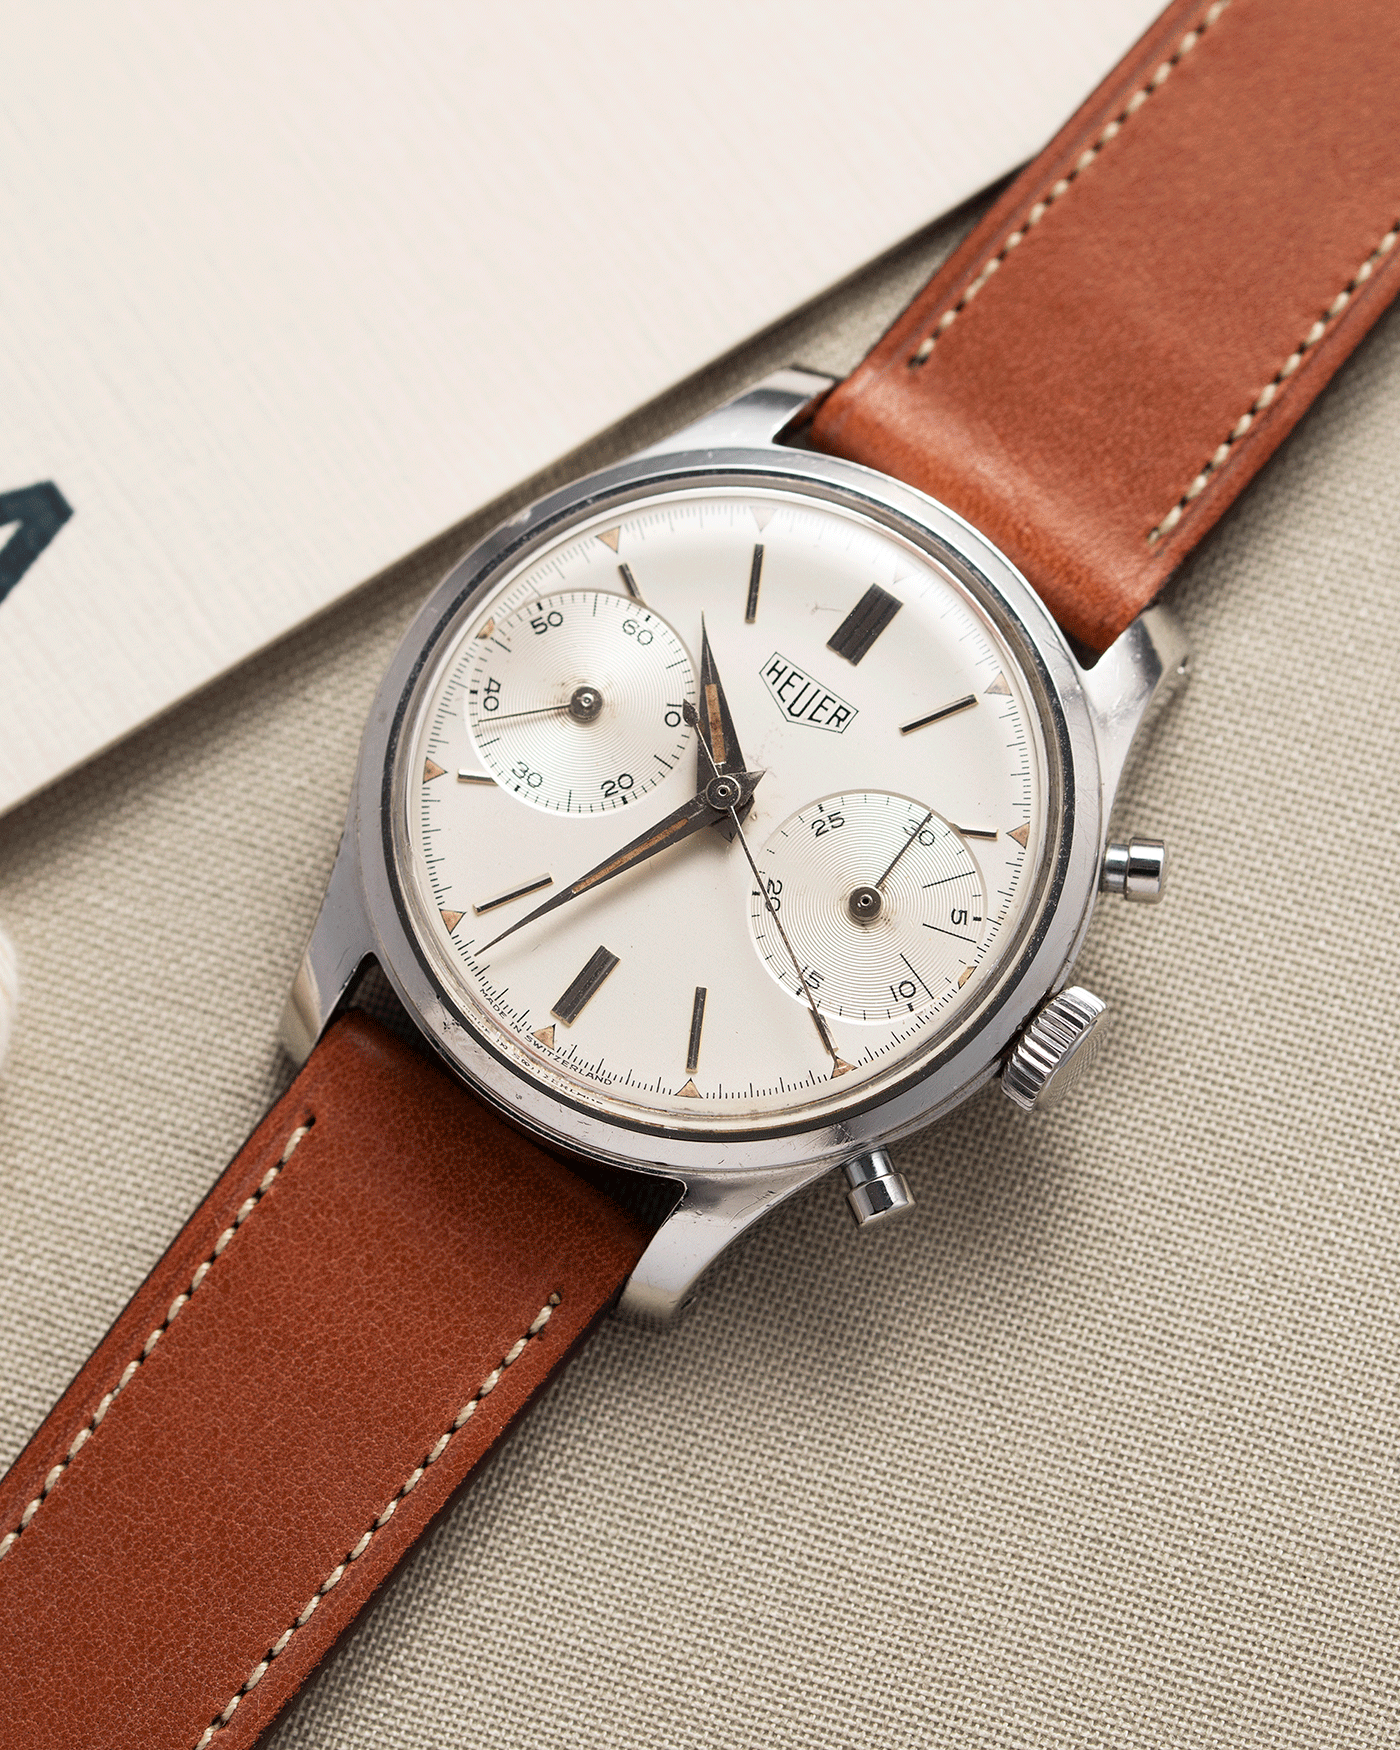 Brand: Heuer Year: 1950's Reference Number: 404 Material: Stainless Steel Movement: Valjoux 23 Case Diameter: 34mm Lug Width: 18mm Bracelet/Strap: Nostime Gold Tan Barenia Smooth Calf